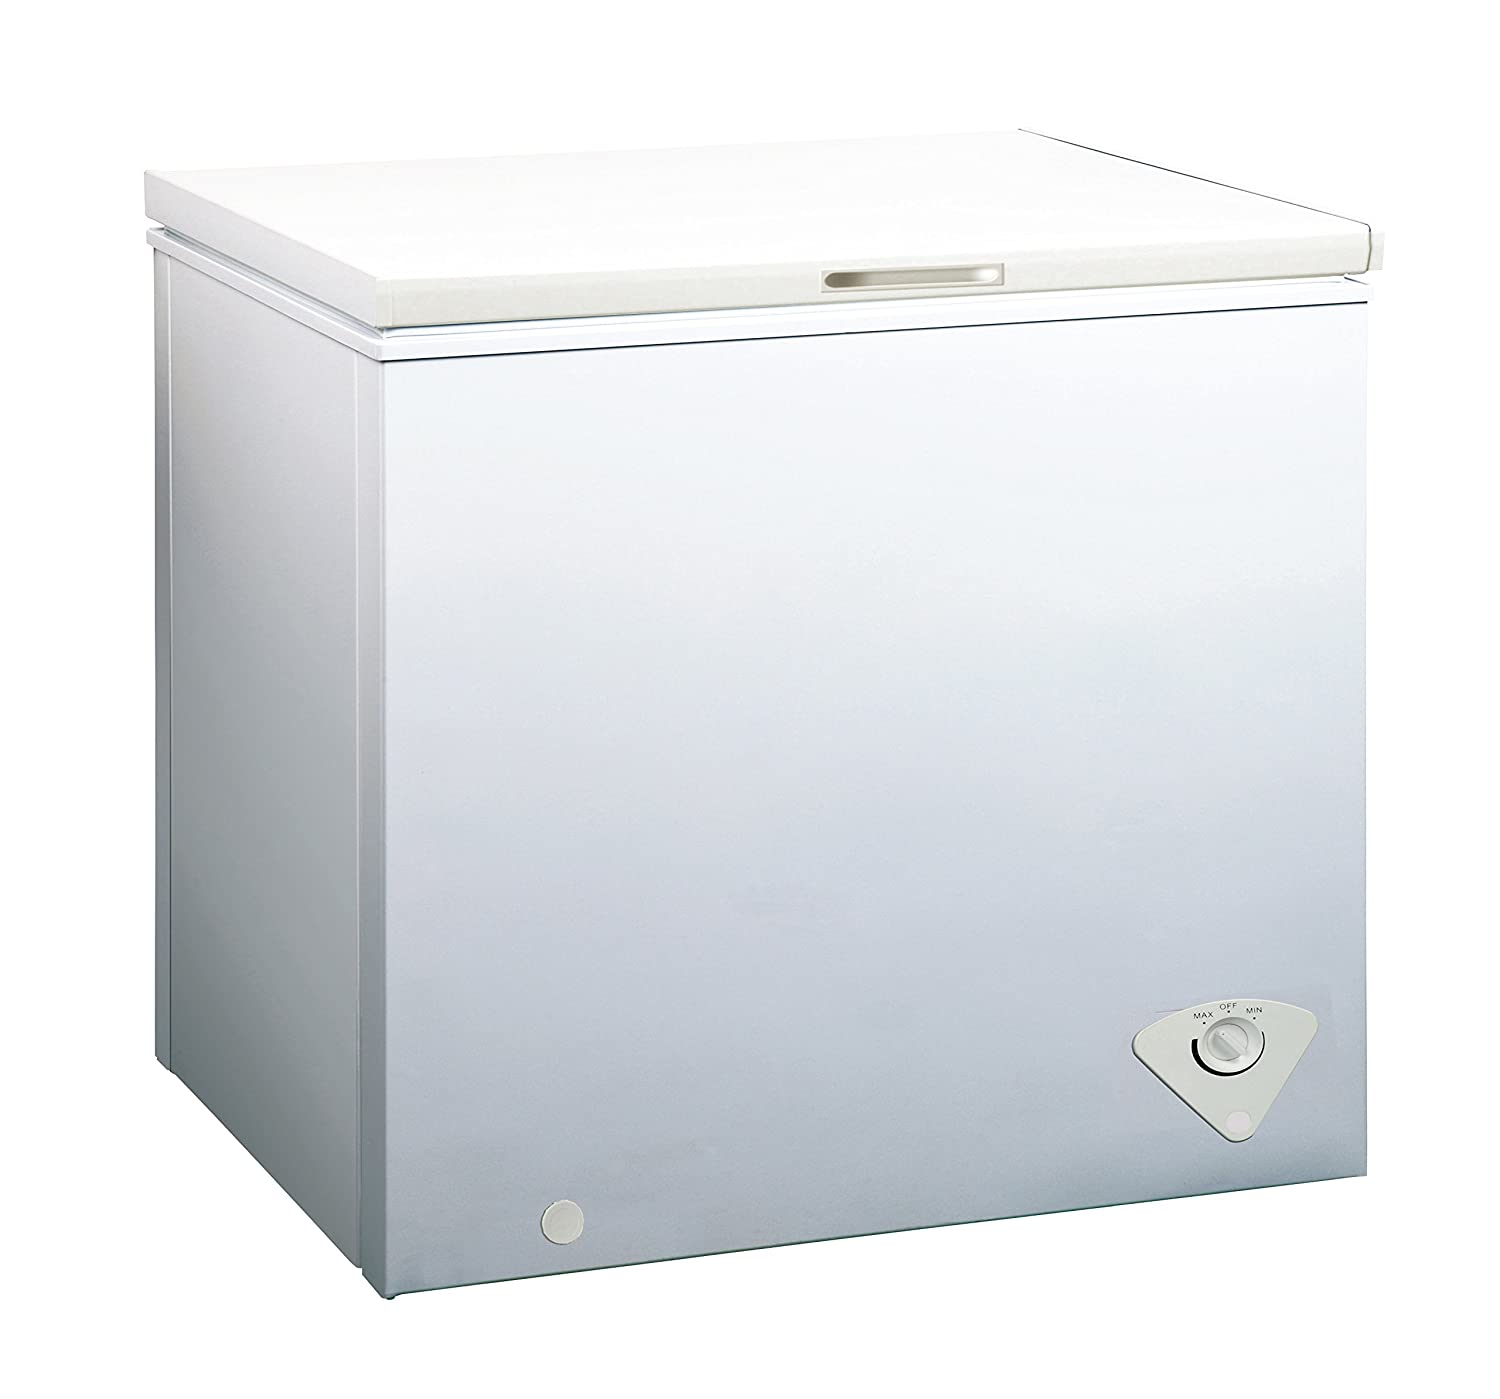 midea WHS-129C1 Single Door Chest Freezer, 3.5 Cubic Feet, White Midea America Corperation